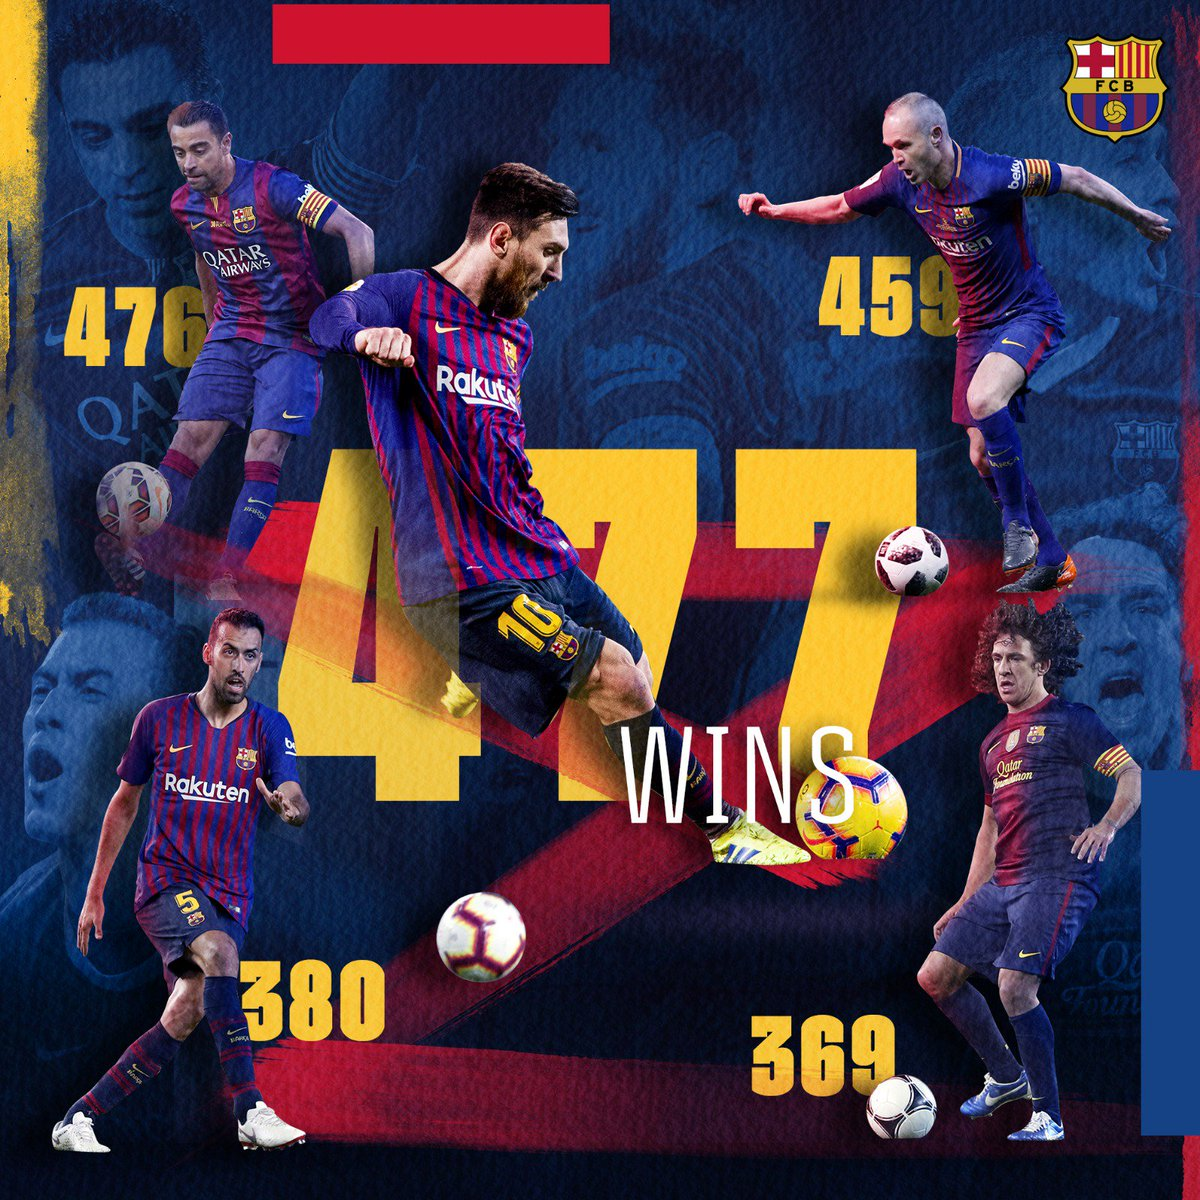 4⃣7⃣7⃣ A new club record for the number of wins in a Barça shirt! ⚽⚽⚽ And he does it by scoring a hat-trick! 👏👏👏 Messi, you BEAUTY!